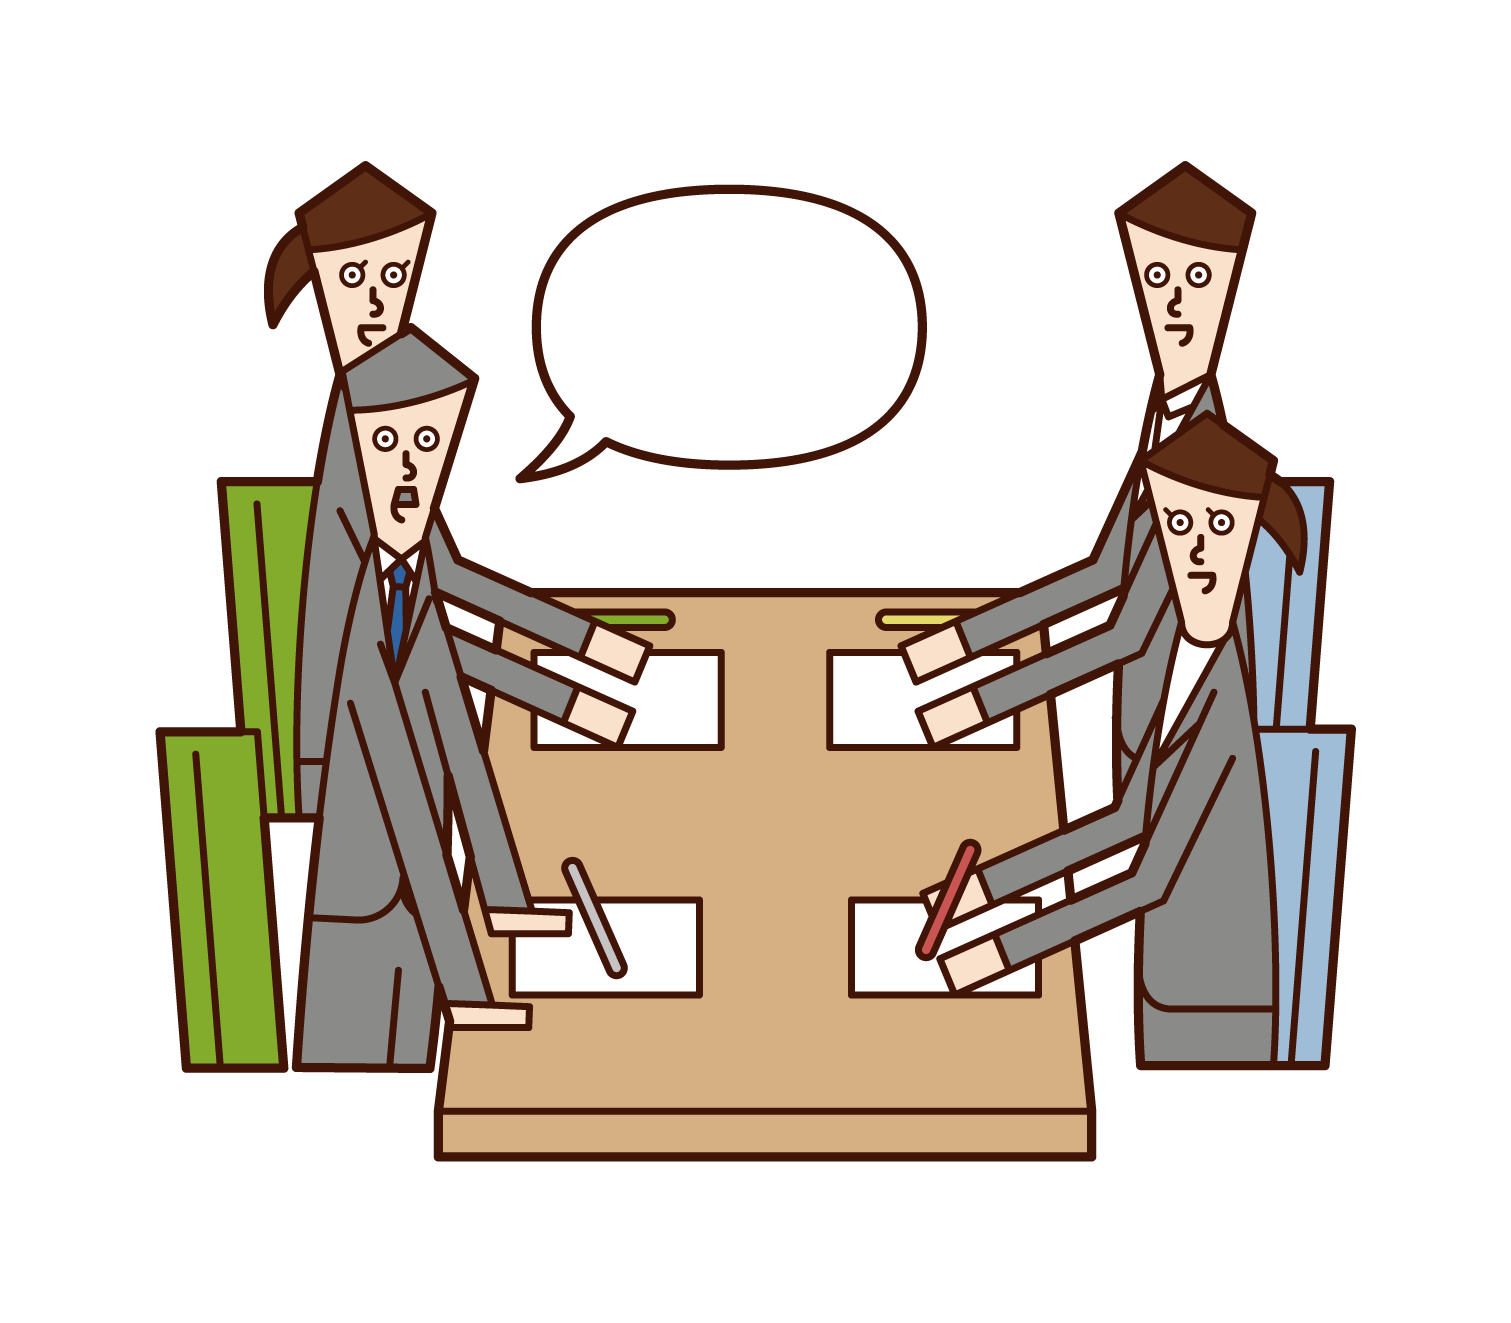 Illustration of a man speaking at a meeting